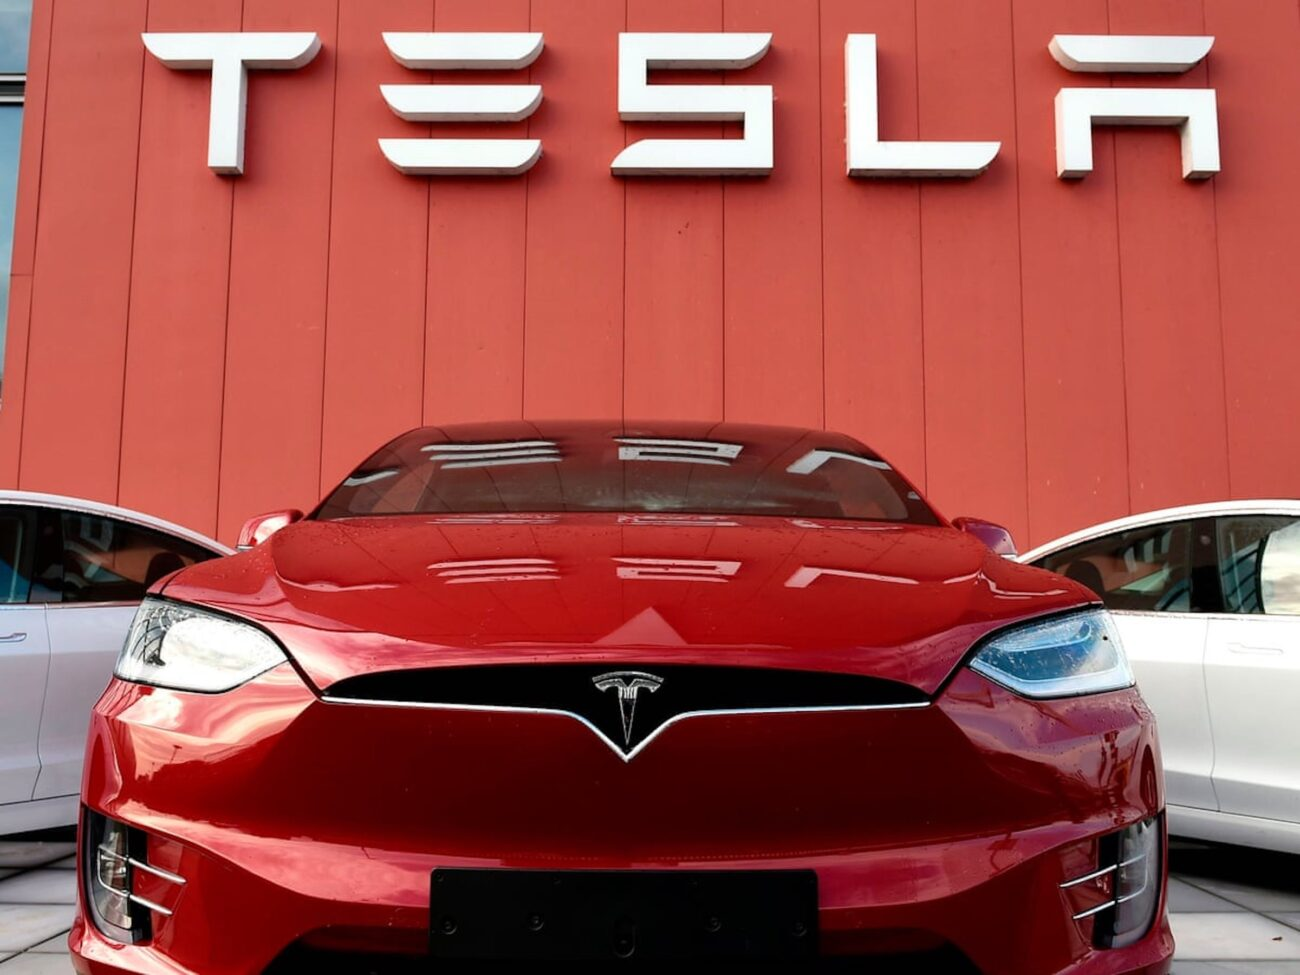 As Tesla releases its new auto pilot beta test, many are concerned about the safety of the program. Here are all the details on Tesla's latest software.